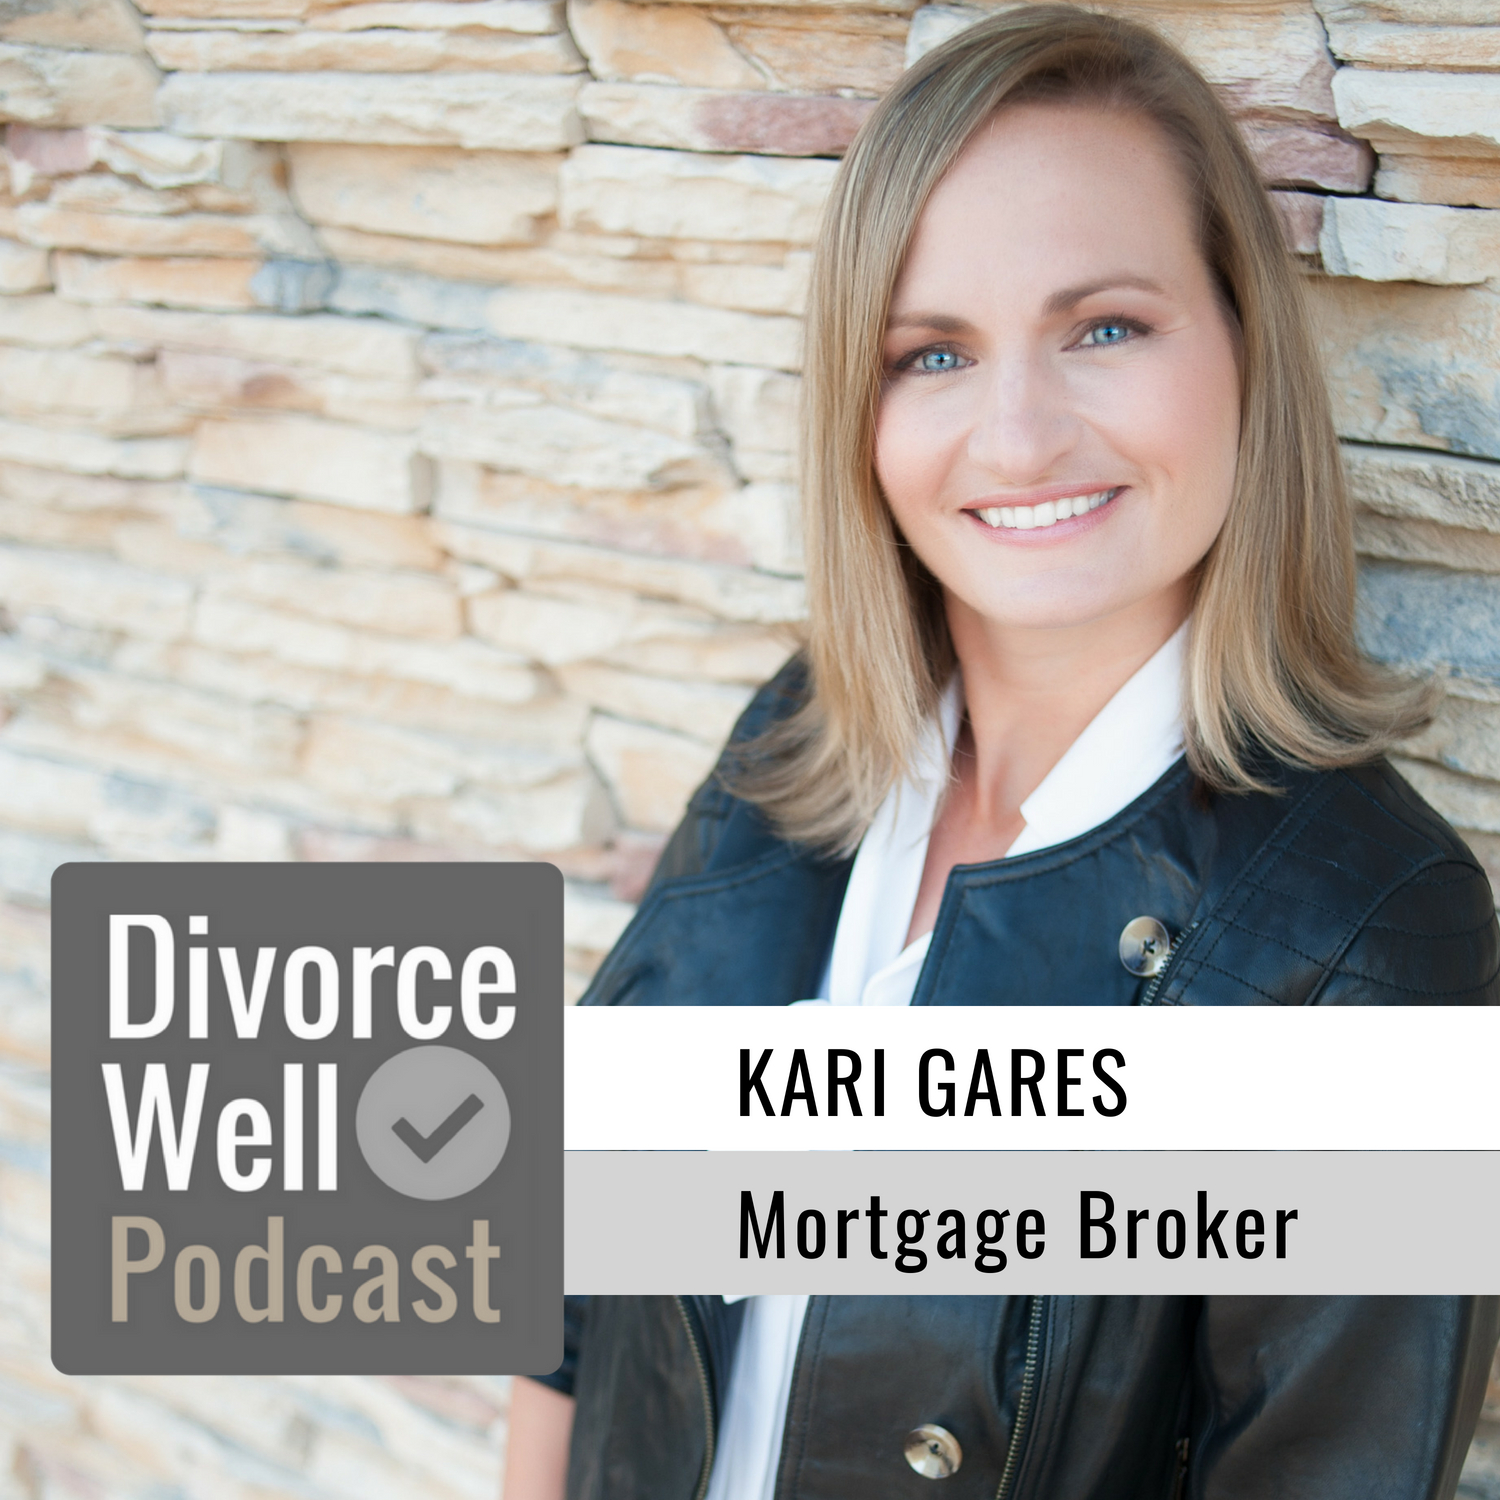 Kari Gares on the Divorce Well Podcast about using a mortgage broker when you separate